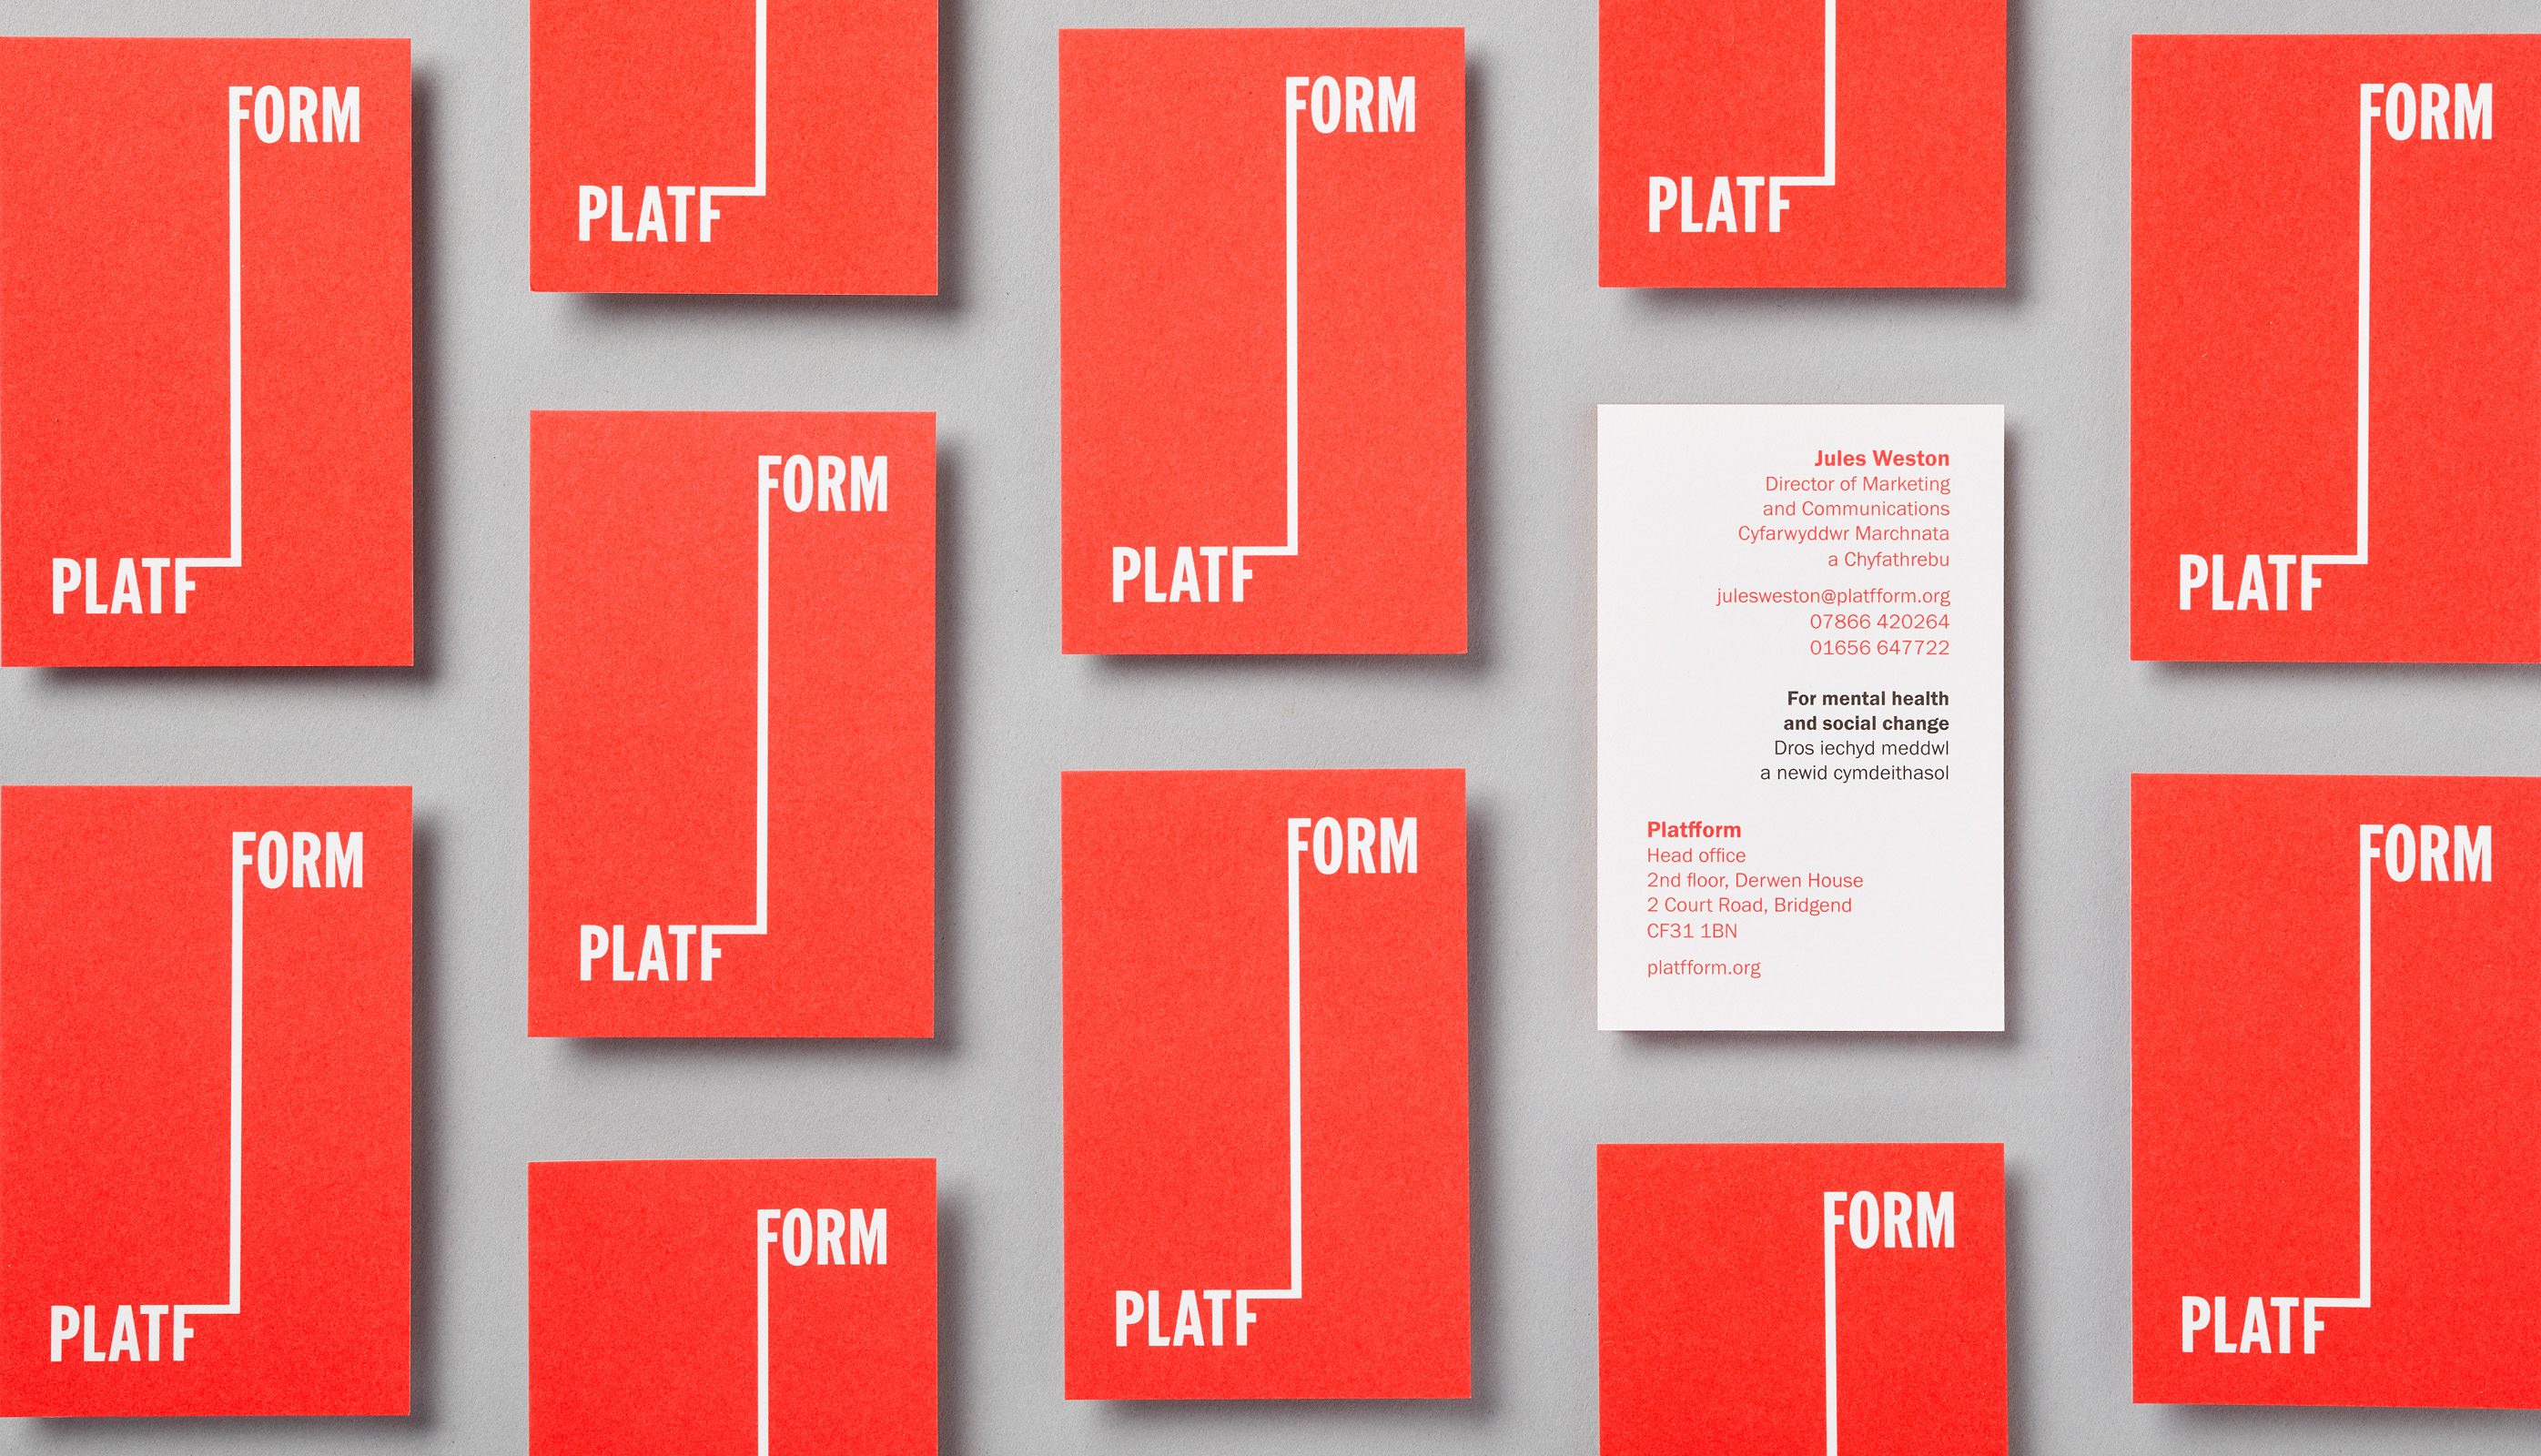 Platfform business cards